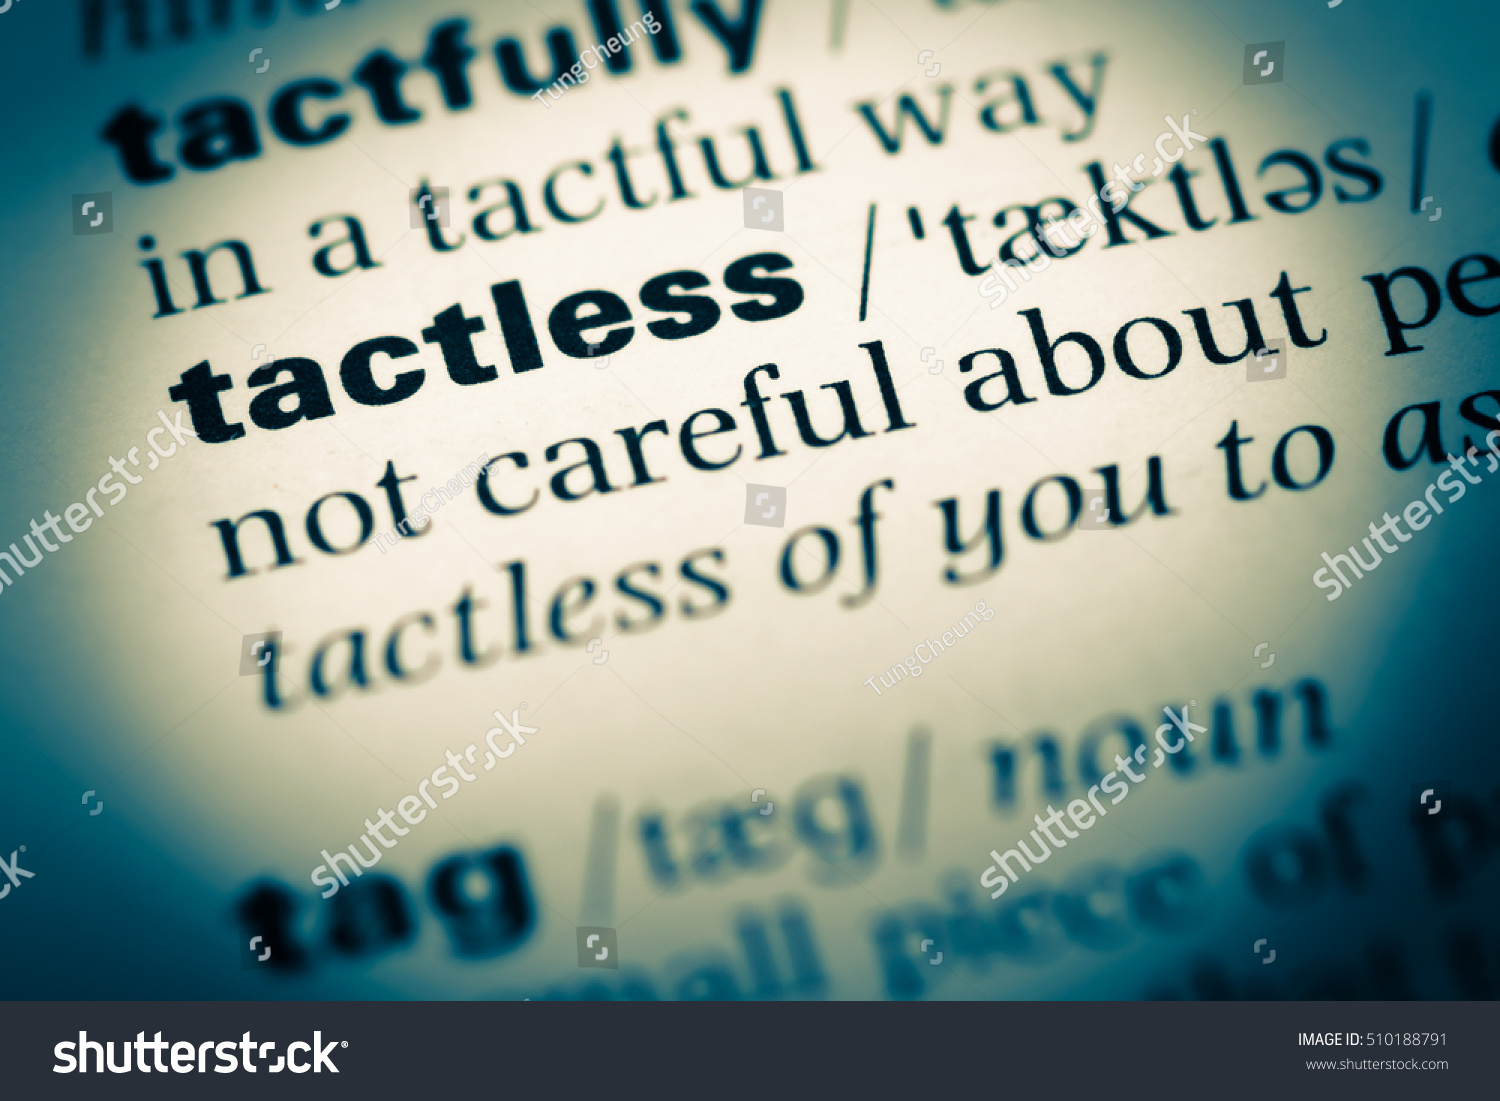 What is tactful meaning of the word 88